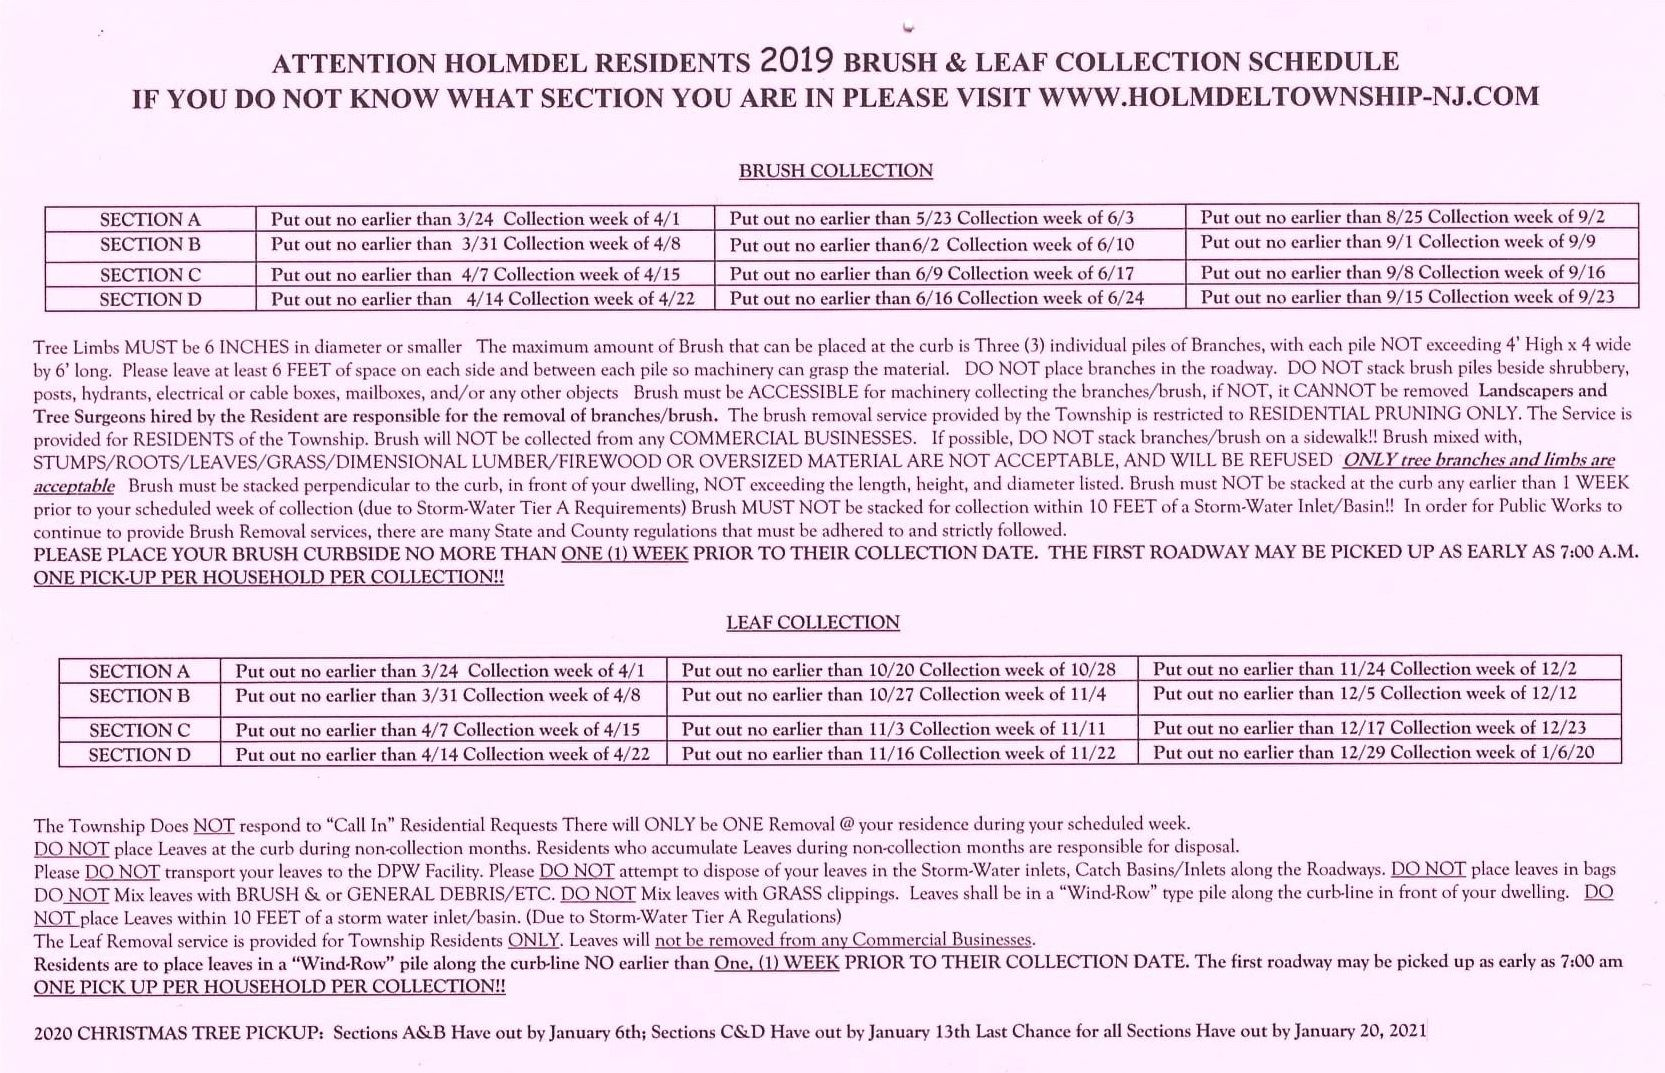 2019 Brush-Leaf Collection Schedule